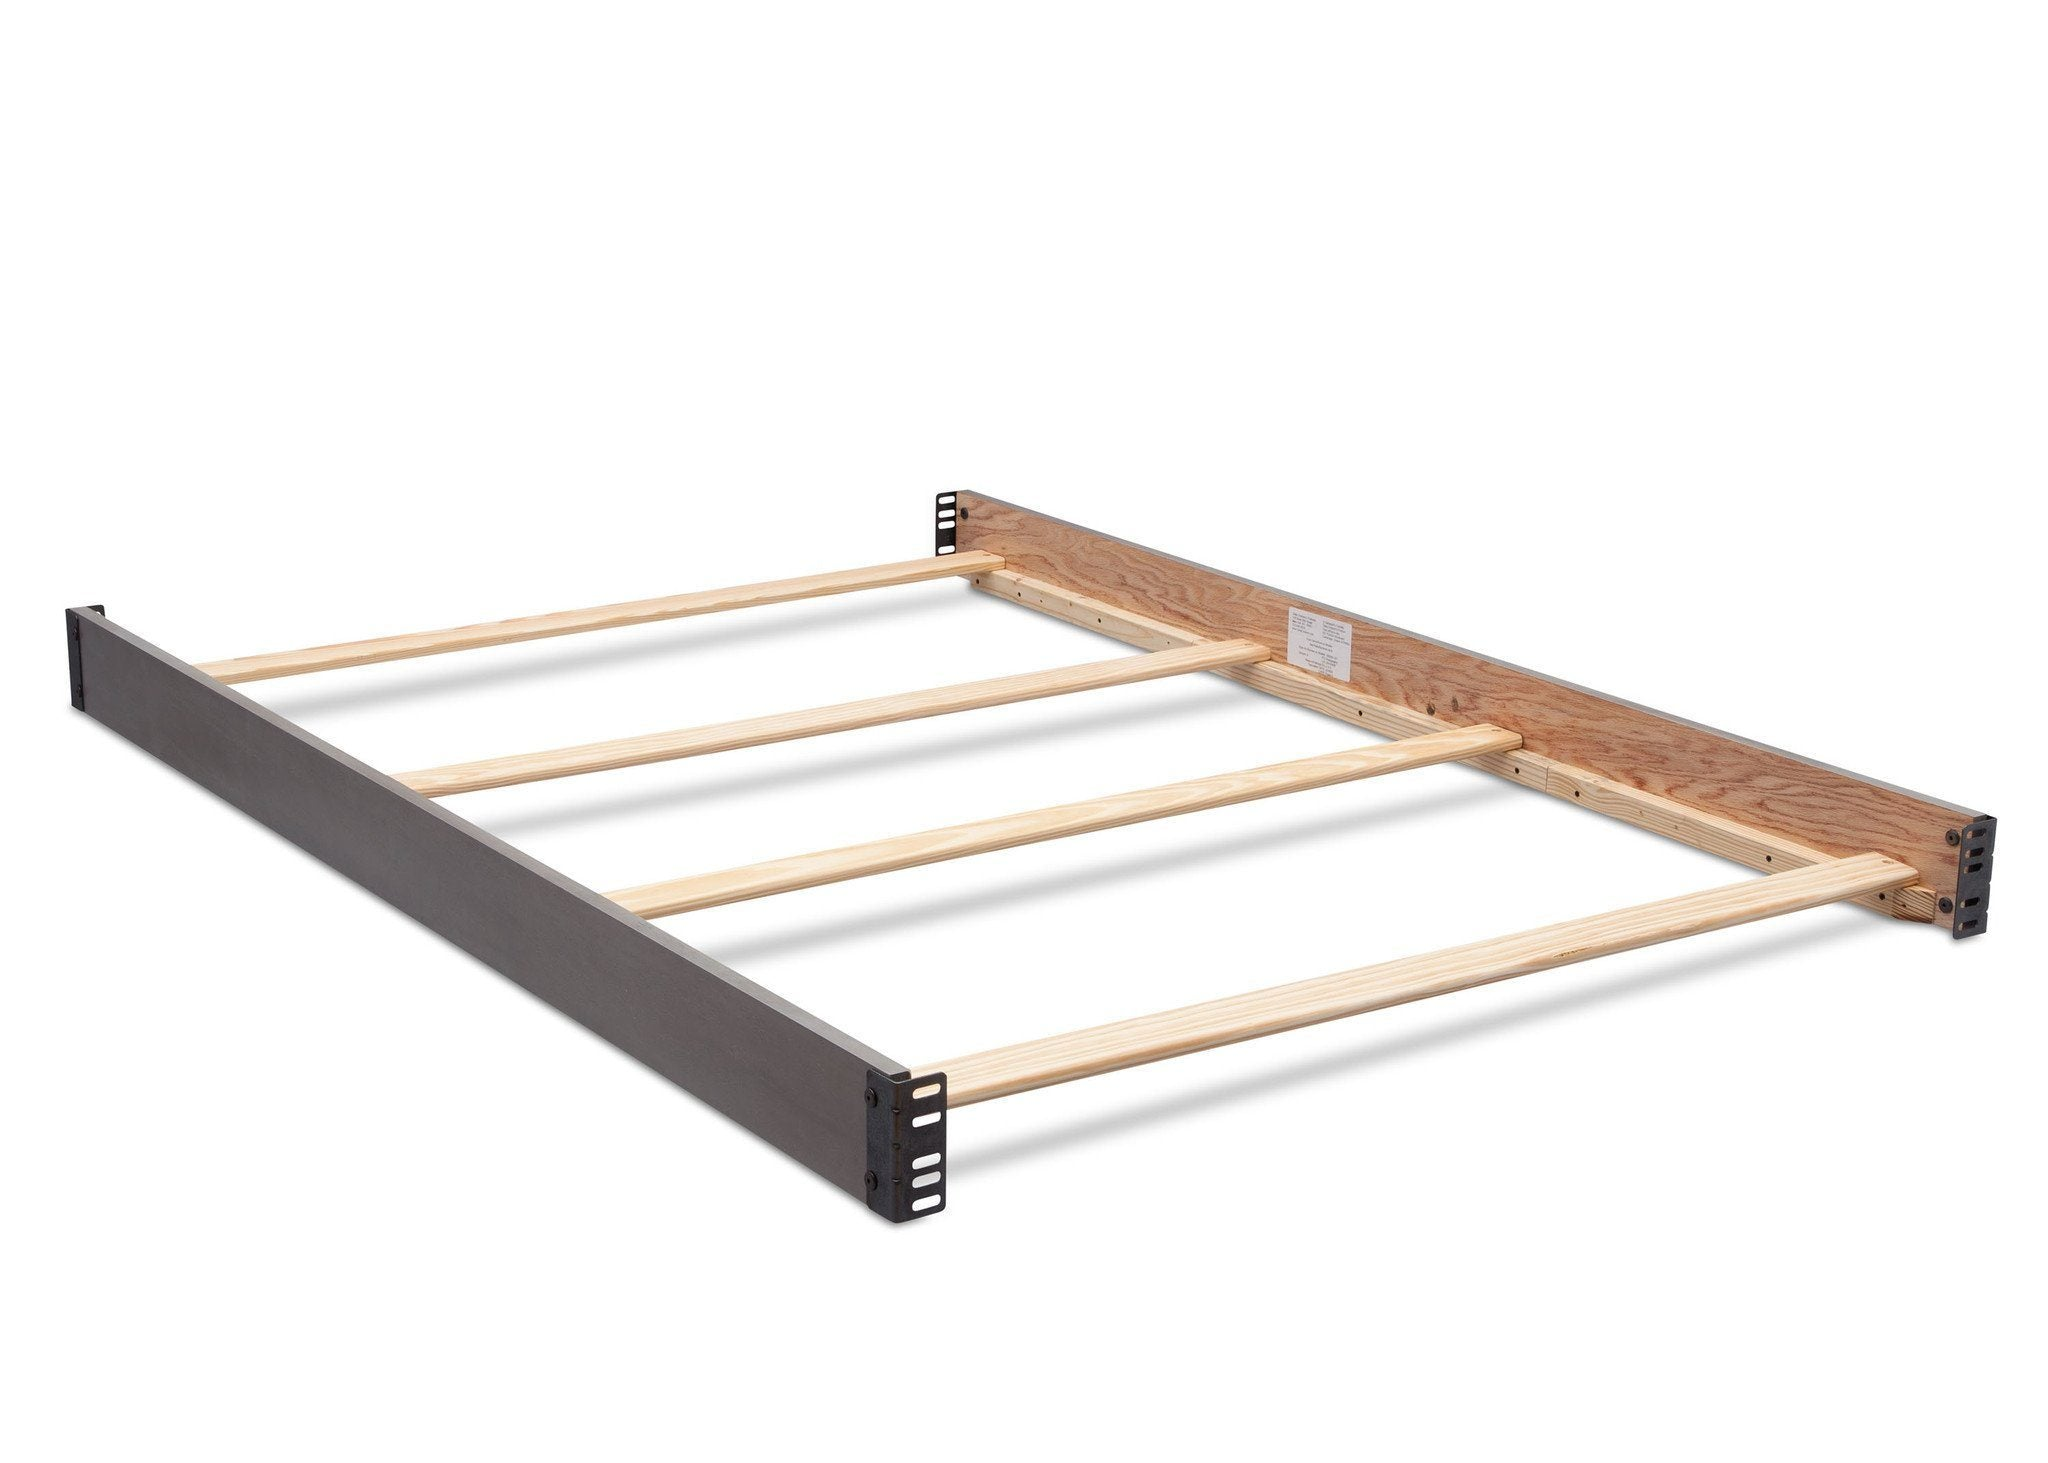 Simmons Kids Storm (161) Full Size Wood Bed Rails (180050) d1d for Bristol 4-in-1 Convertible Crib